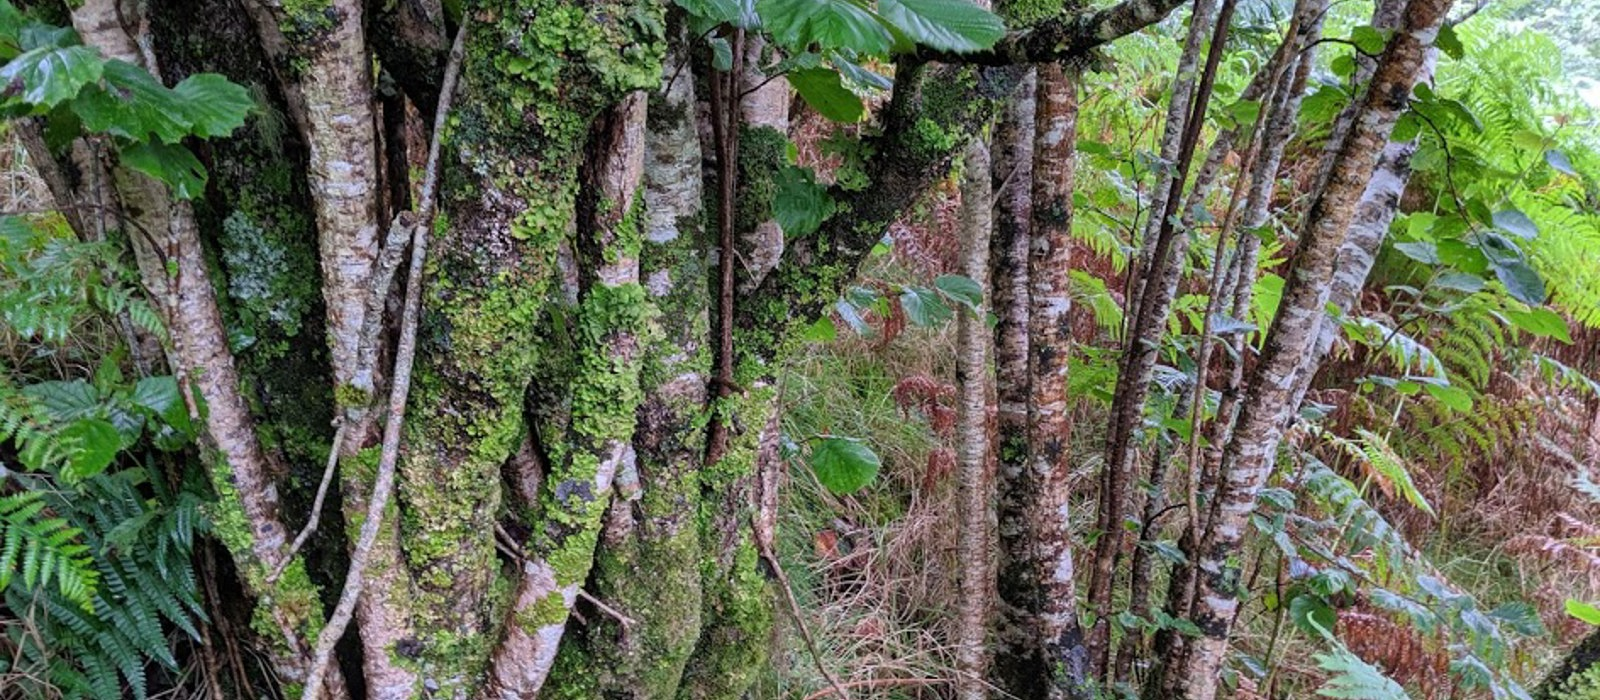 5 places to see rainforest in Argyll